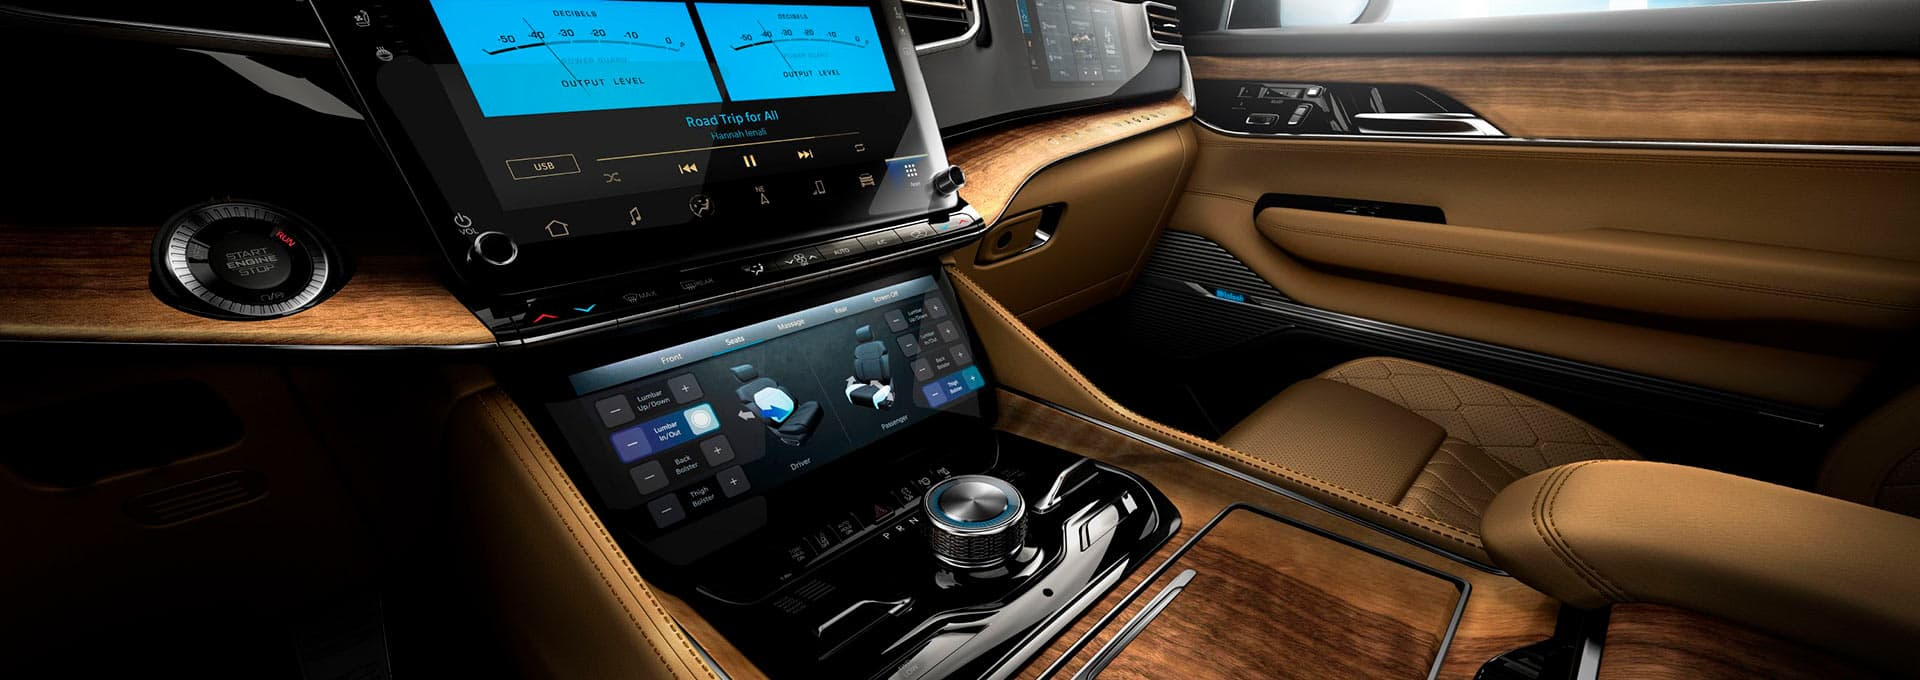 McIntosh speakers in the new Jeep Grand Wagoneer